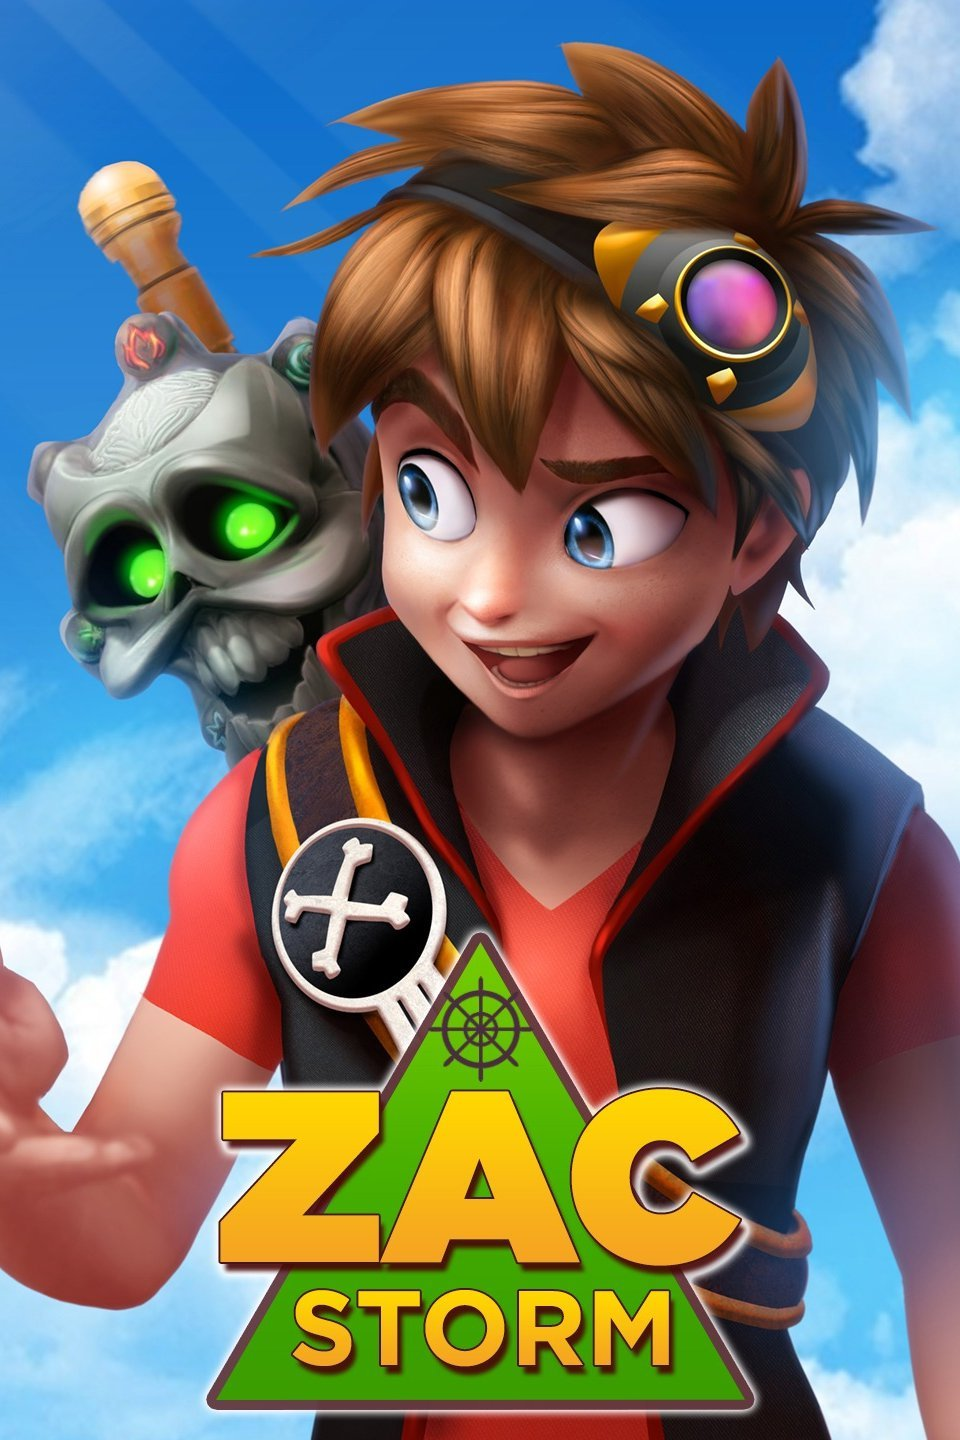 Zak Storm Season 1 Complete Download 480p WEBRip